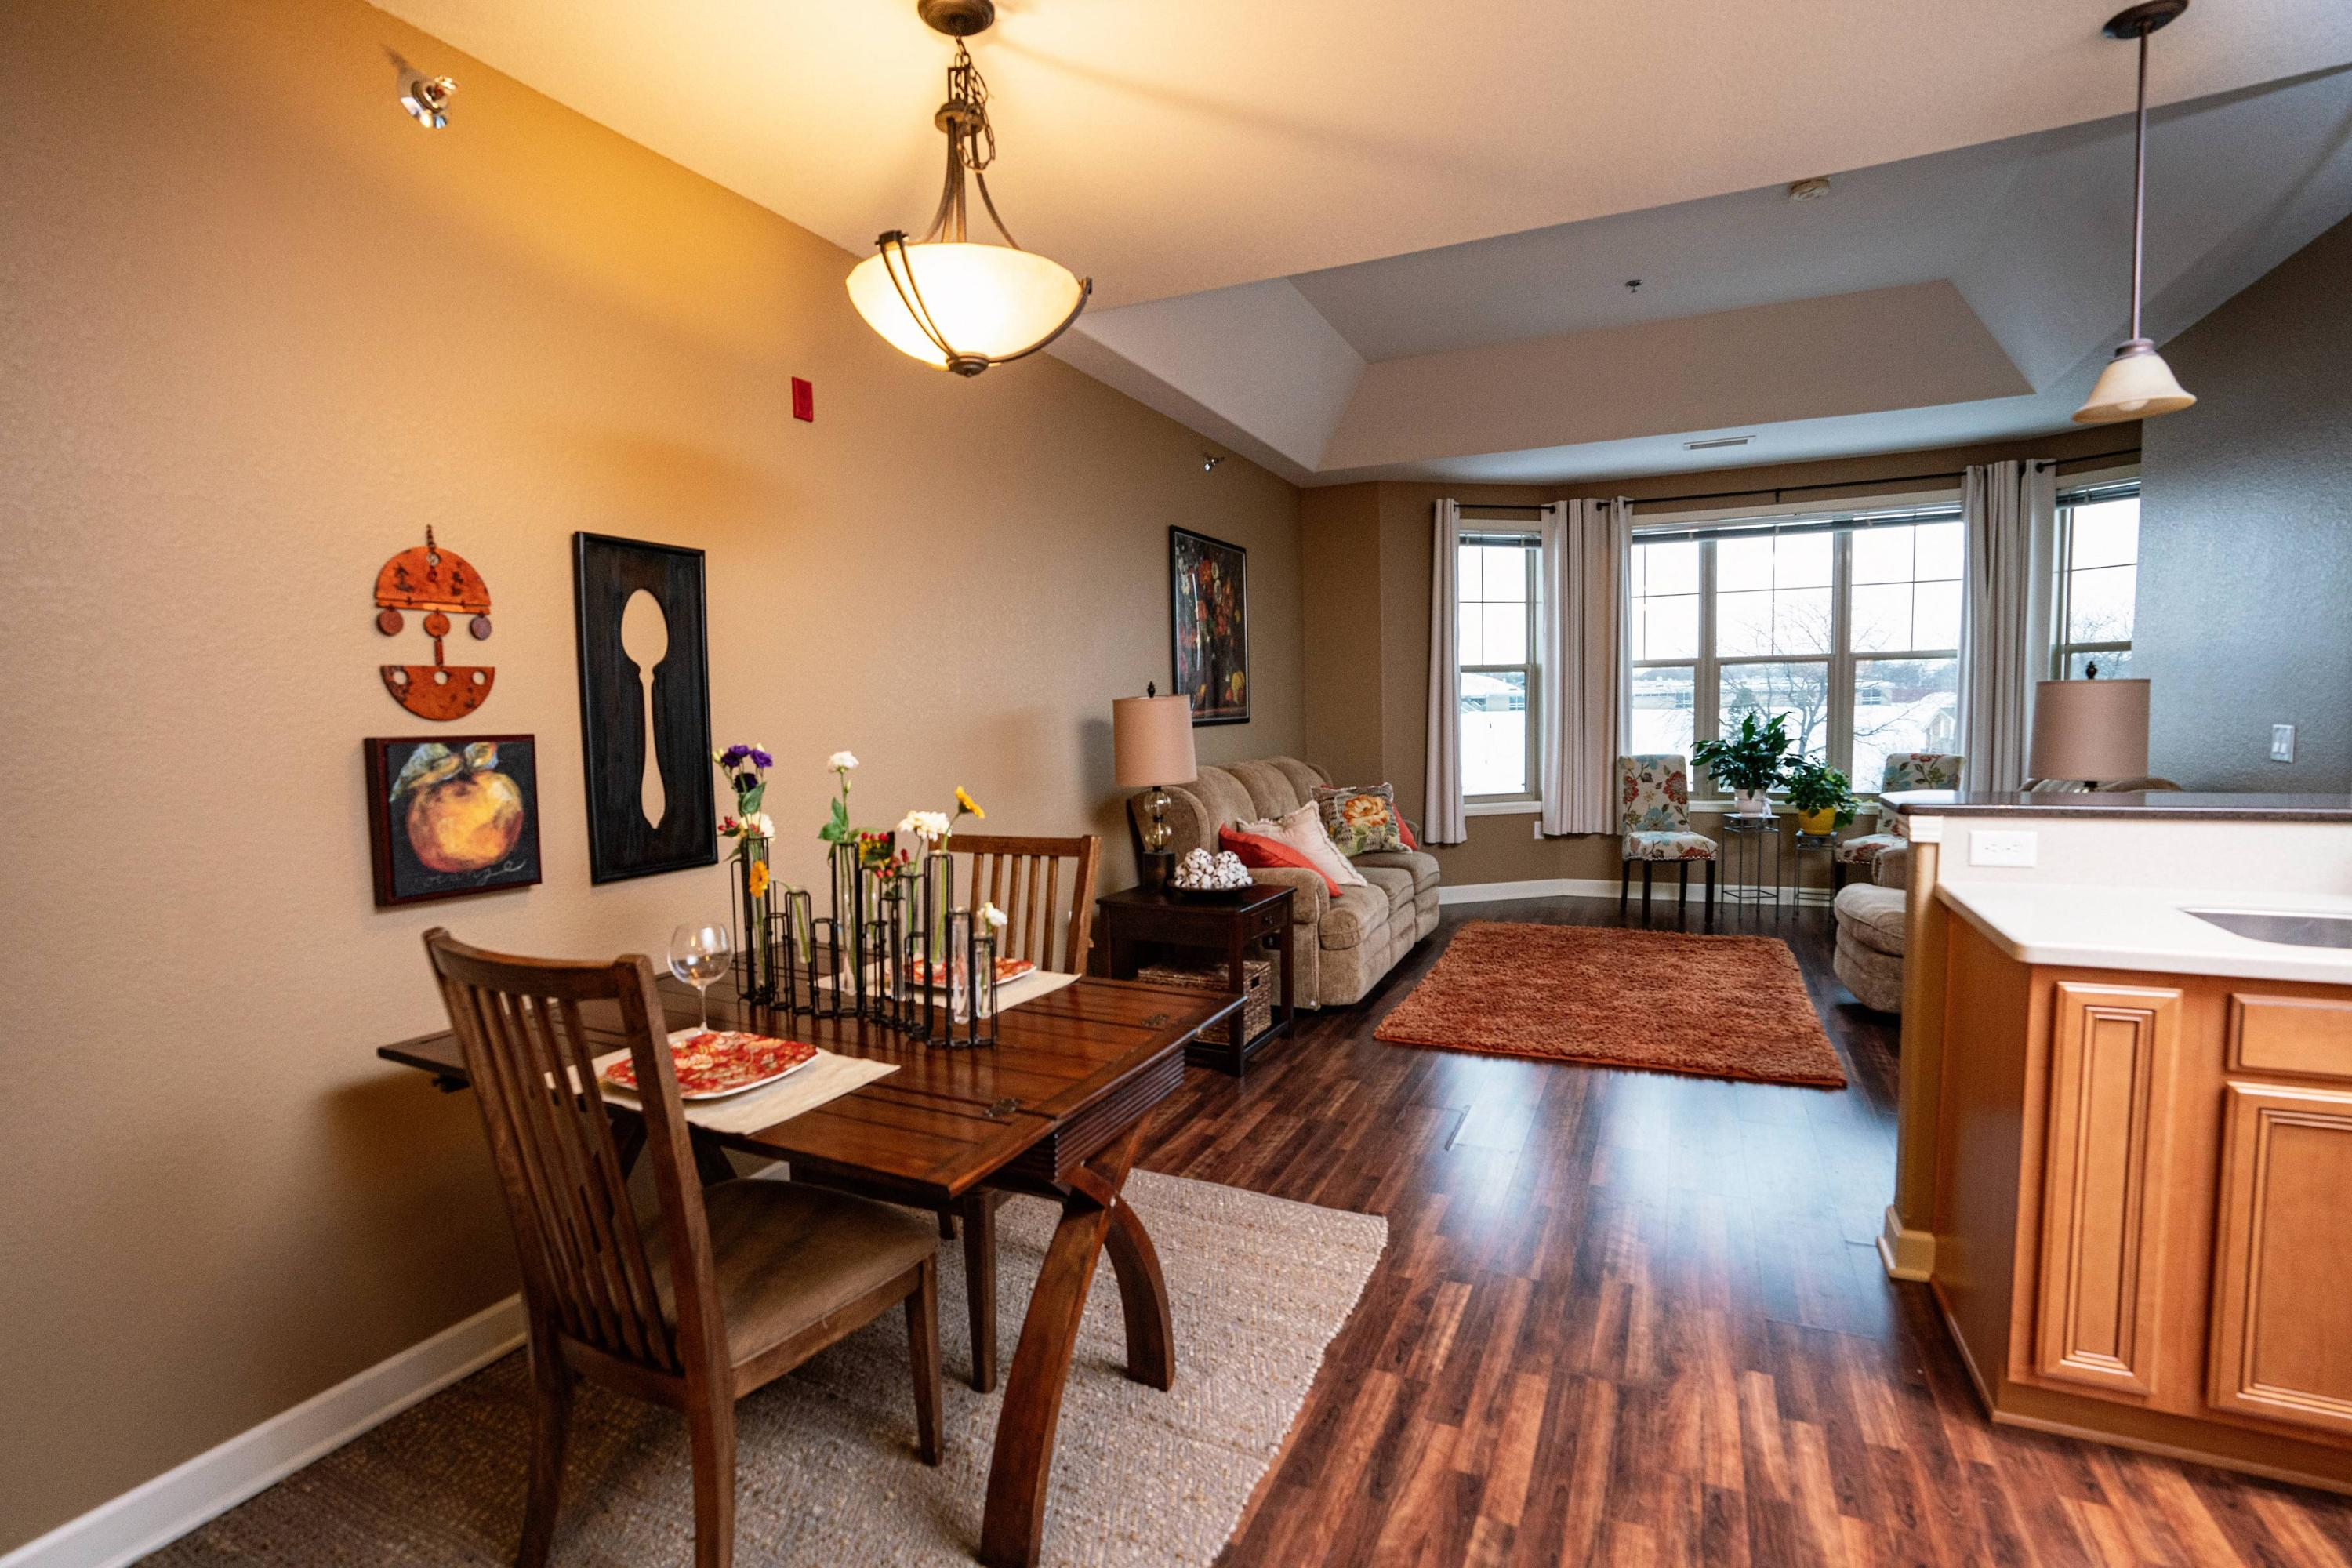 4130 Lake Dr., Saint Francis, Wisconsin 53235, 1 Bedroom Bedrooms, ,1 BathroomBathrooms,Condominiums,For Sale,Lake Dr.,4,1676876